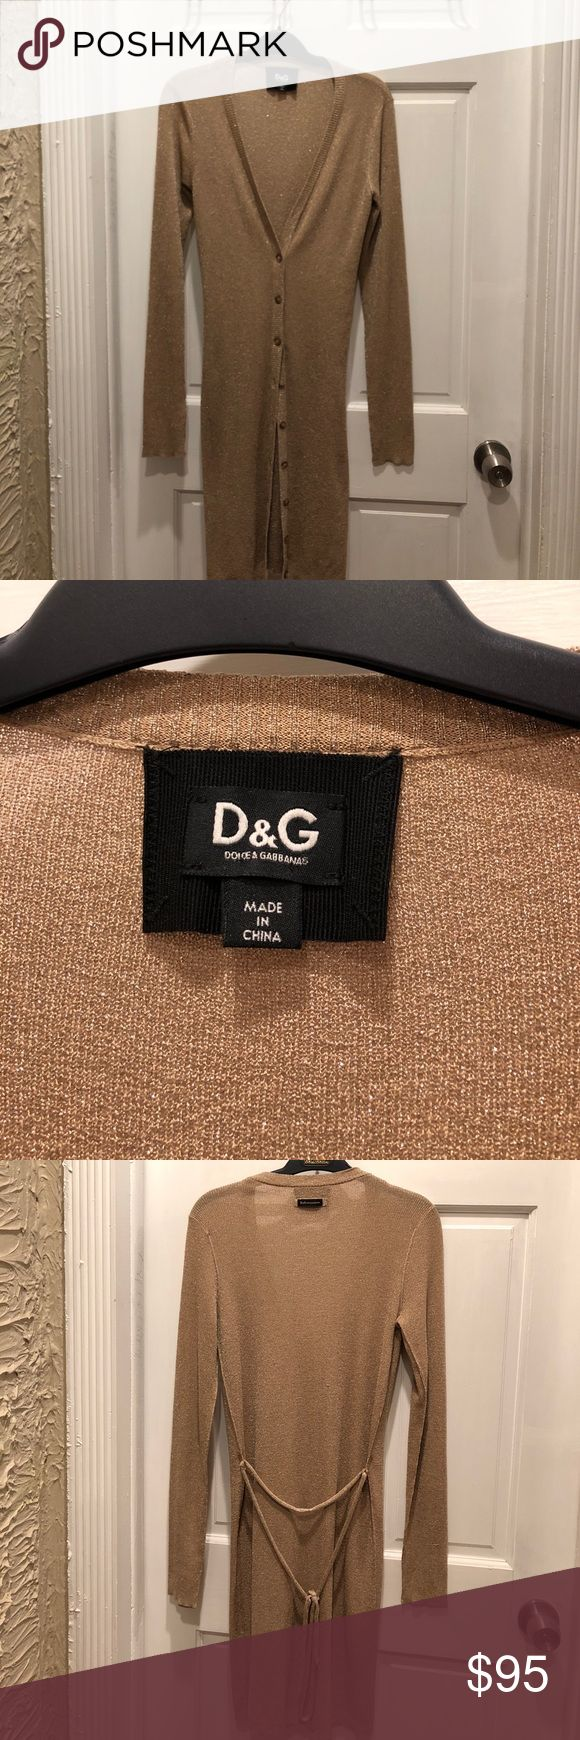 DOLCE &GABBANA metallic long cardigan Authentic  D & G long metallic cardigans  in golden tone , in good condition, gentle wear  just a little of  out thread ,  this is long one very fabulous and fashionable. Dolce & Gabbana Sweaters Cardigans